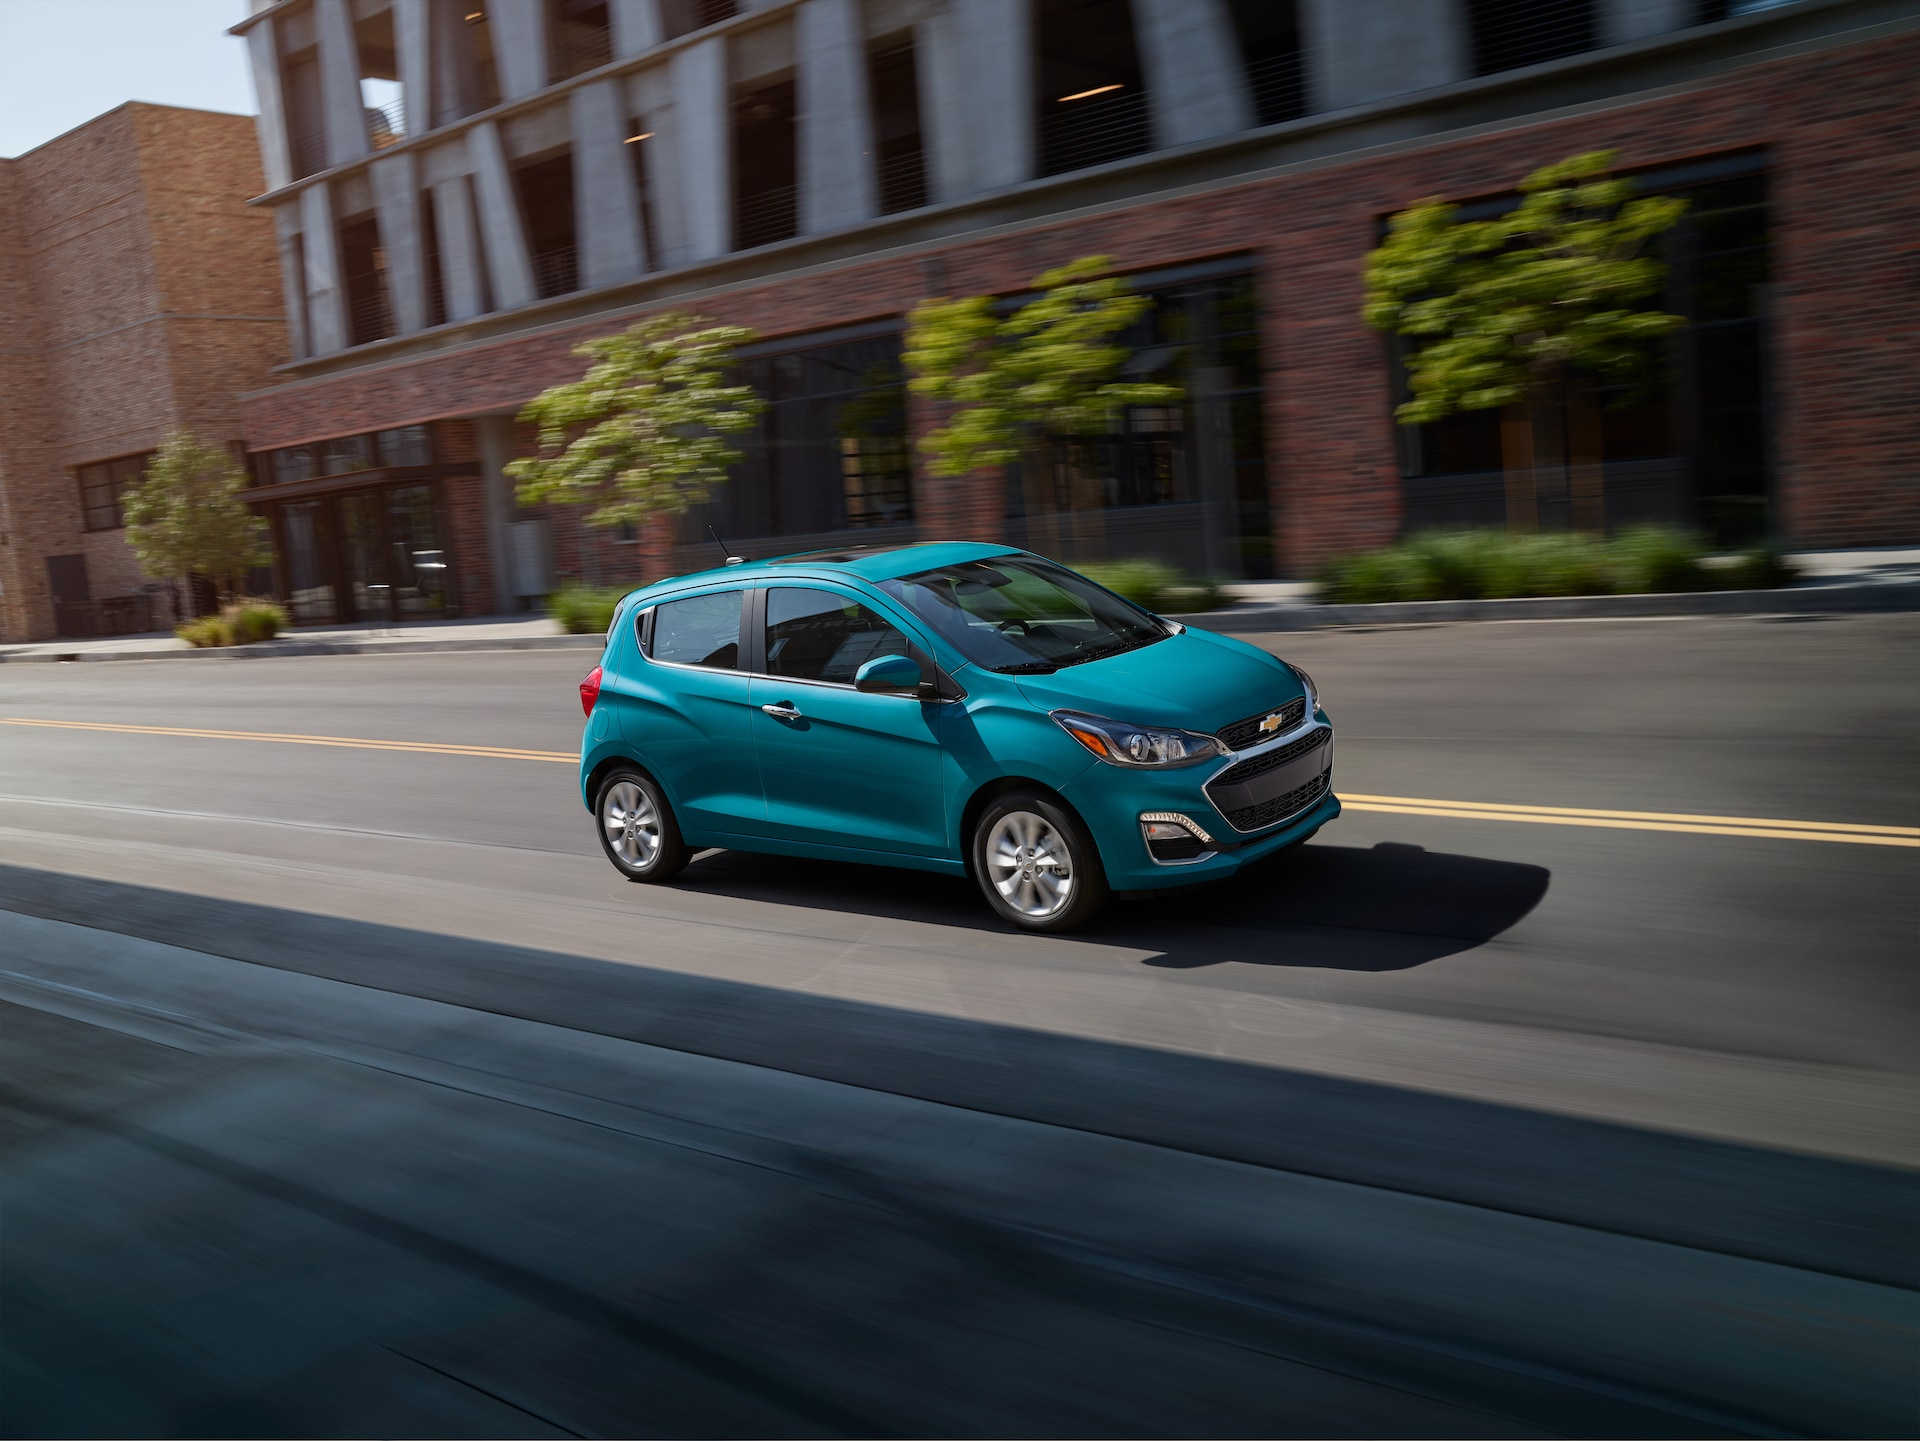 3 Main Benefits of Using OEM parts for your vehicle at Chevrolet of New Bern | Blue 2020 Chevrolet Spark driving downtown